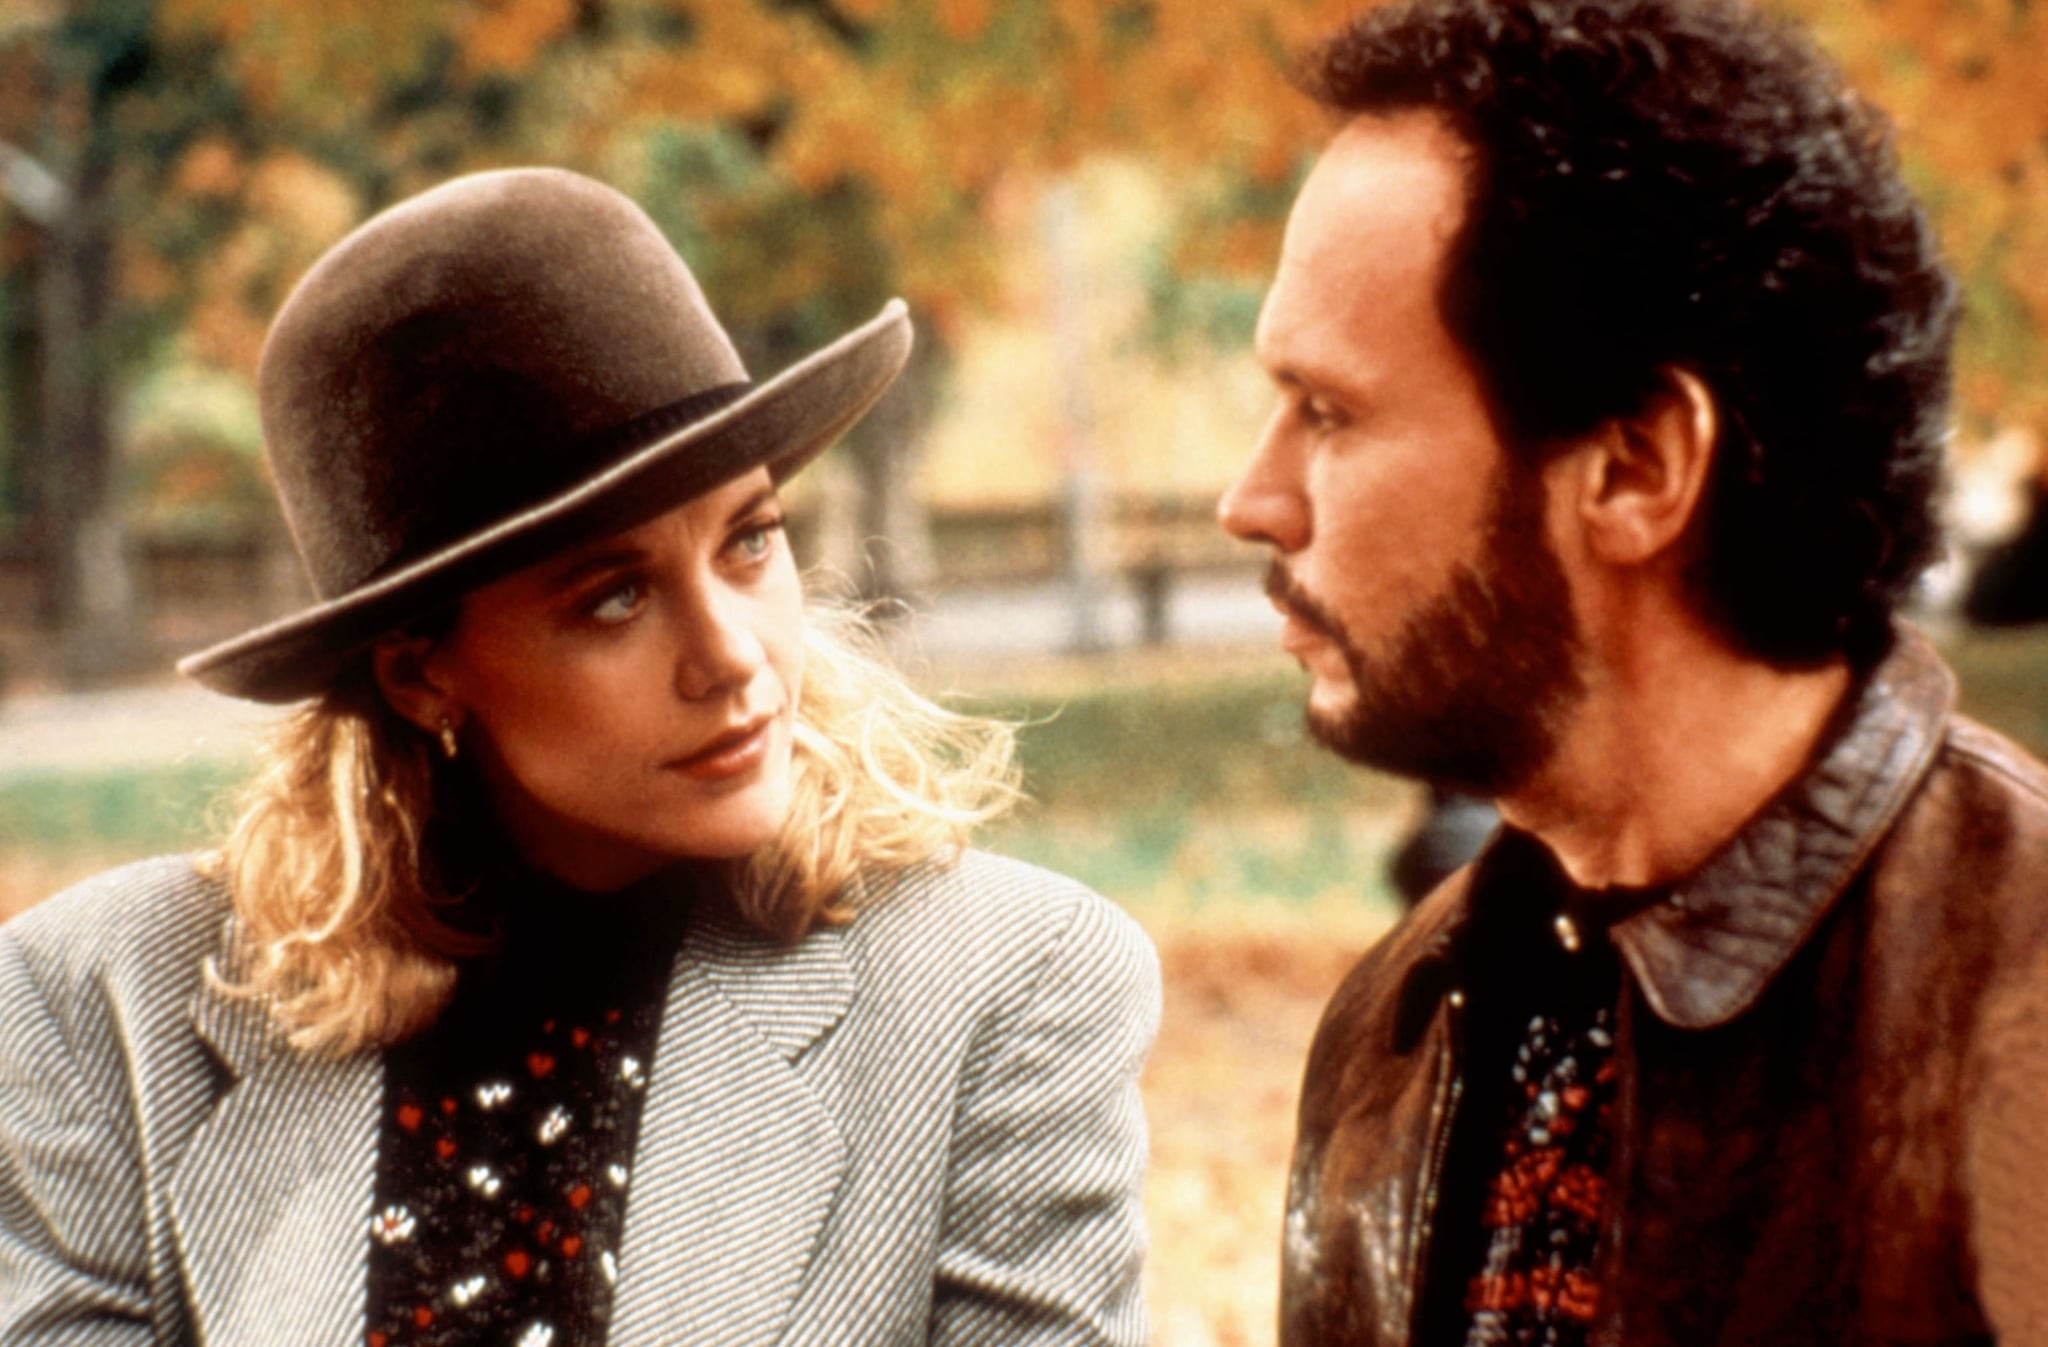 WHEN HARRY MET SALLY..., Meg Ryan, Billy Crystal, 1989. (c) Columbia Pictures/ Courtesy: Everett Collection.